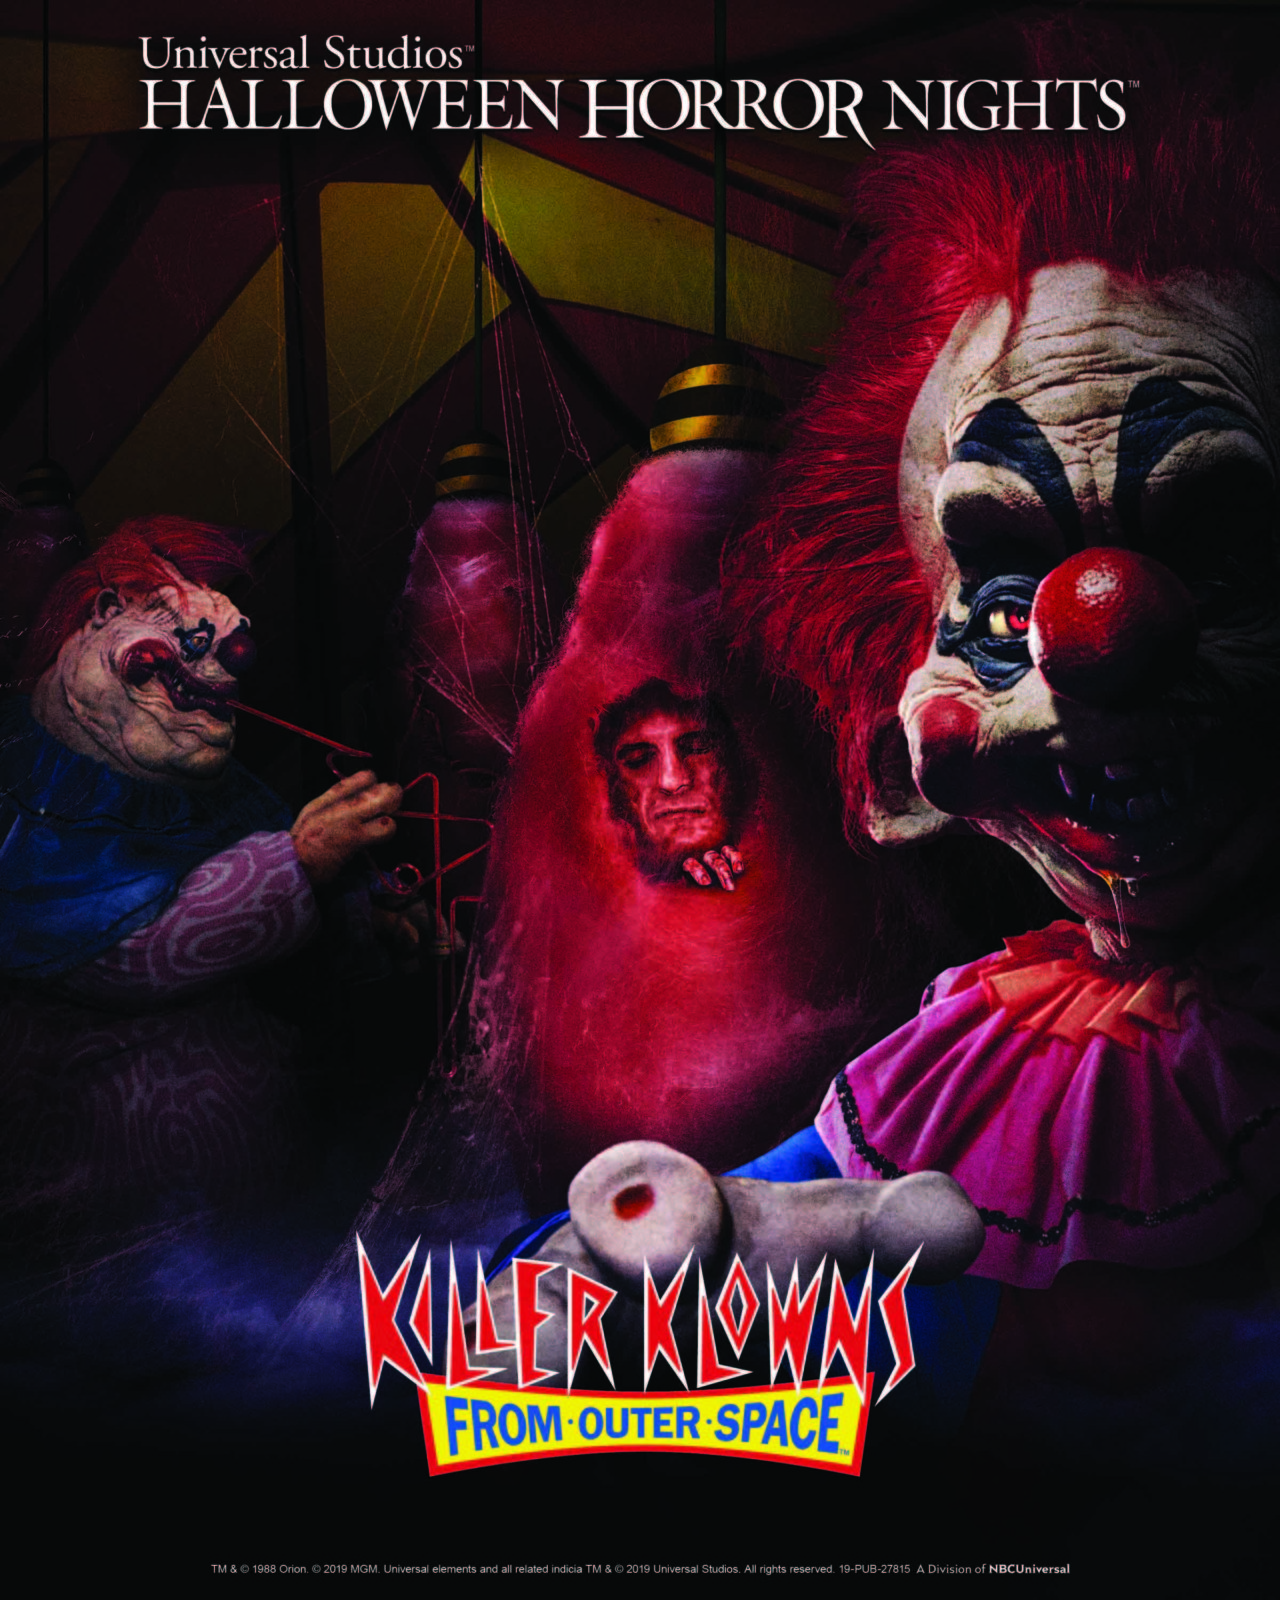 Universal Orlando Halloween Horror Nights 2019 Killer Klowns from Outer Space Mazes at Halloween Horror Nights 2019